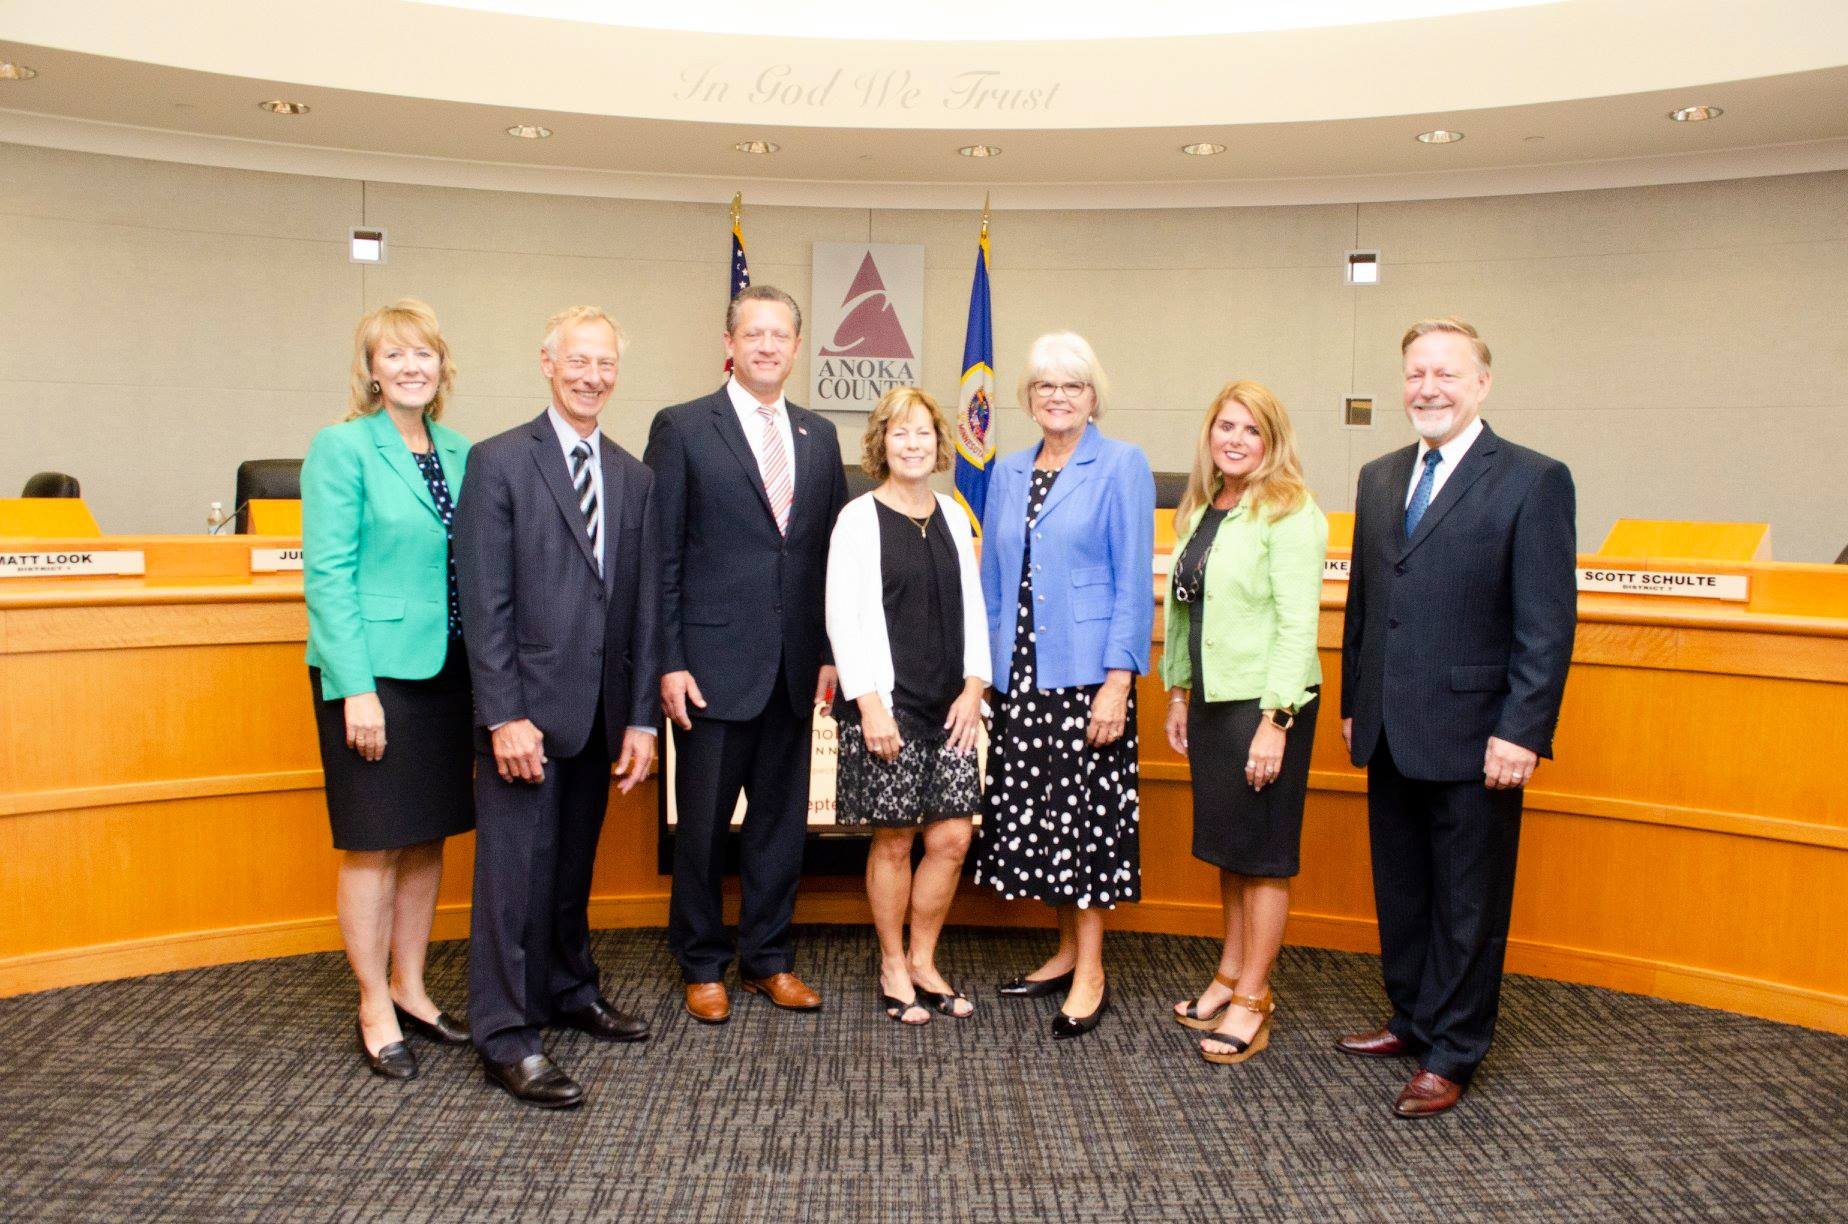 PICTURED: Commissioner Rhonda Sivarajah, Commissioner Jim Kordiak, Commissioner Matt Look, The Dwelling Place Executive Director Linda Wiza, Commissioner Robin West, Commissioner Julie Braastad, Commissioner Scott Schulte. Not pictured is Commissioner Mike Gamache.